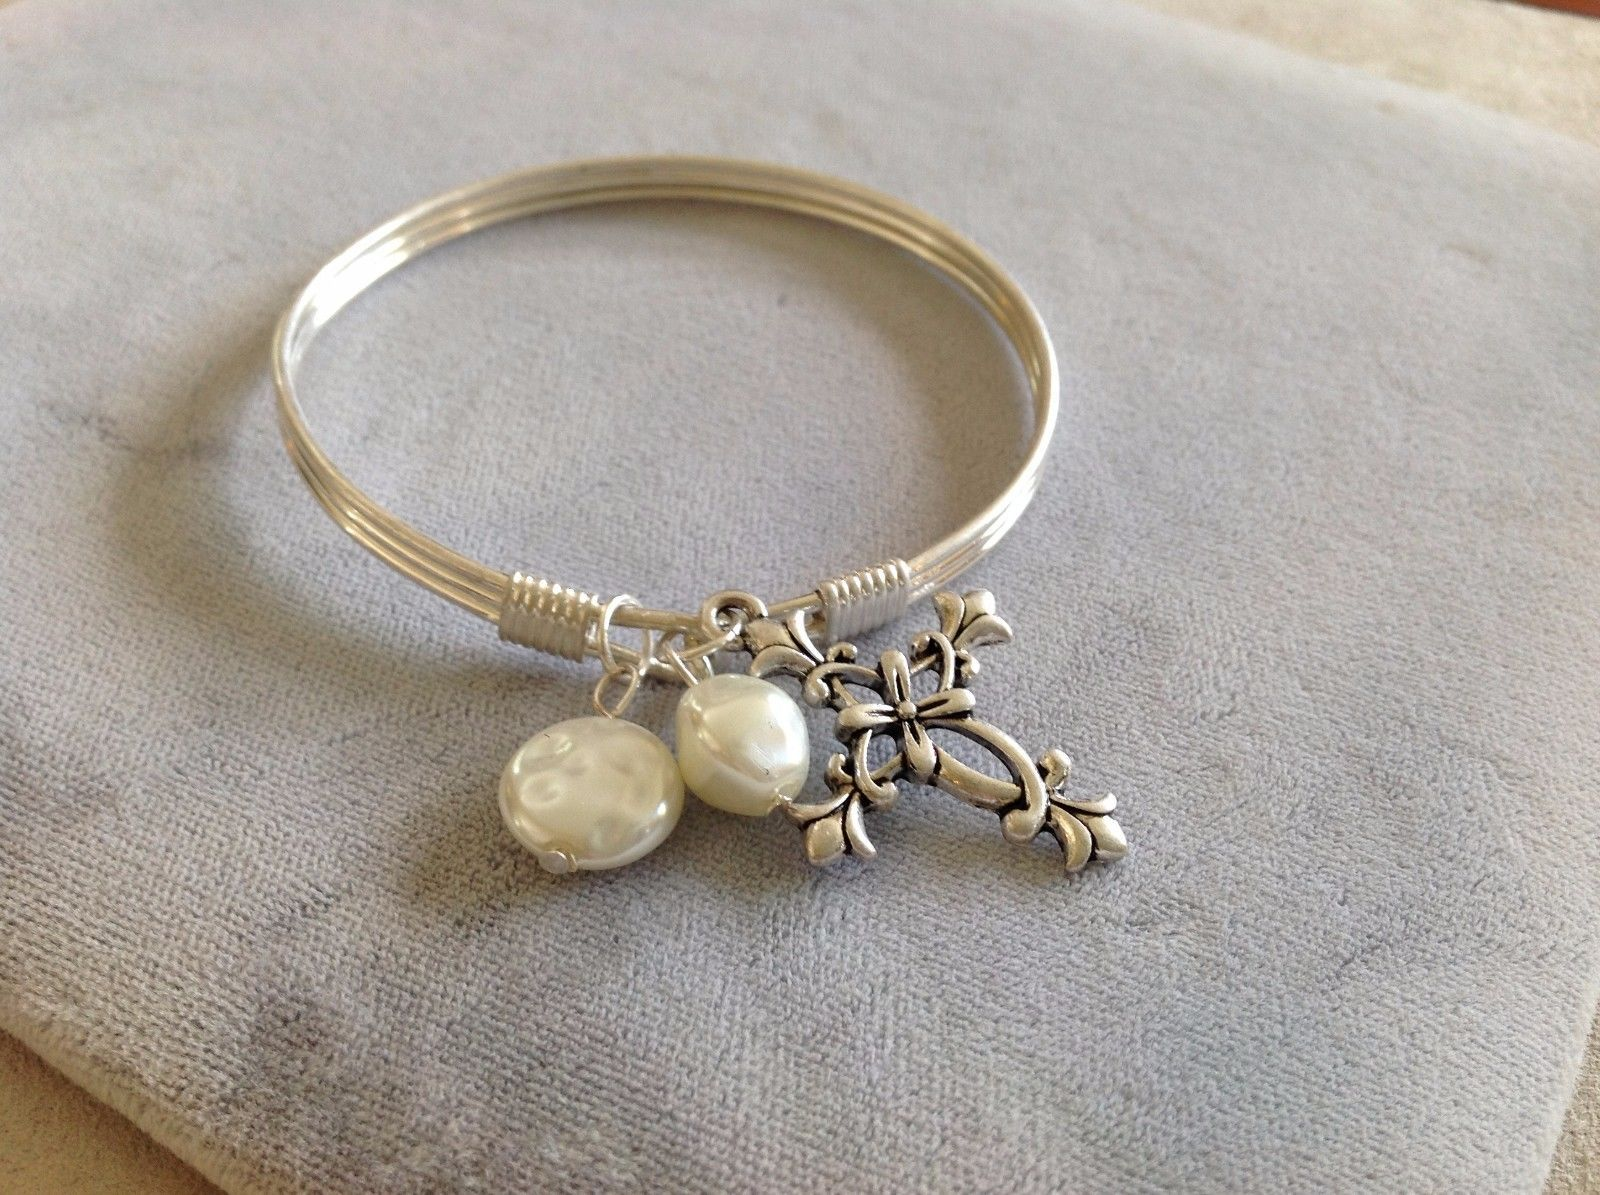 New Silver Toned Bracelet With Floral Cross Charm and Pearls